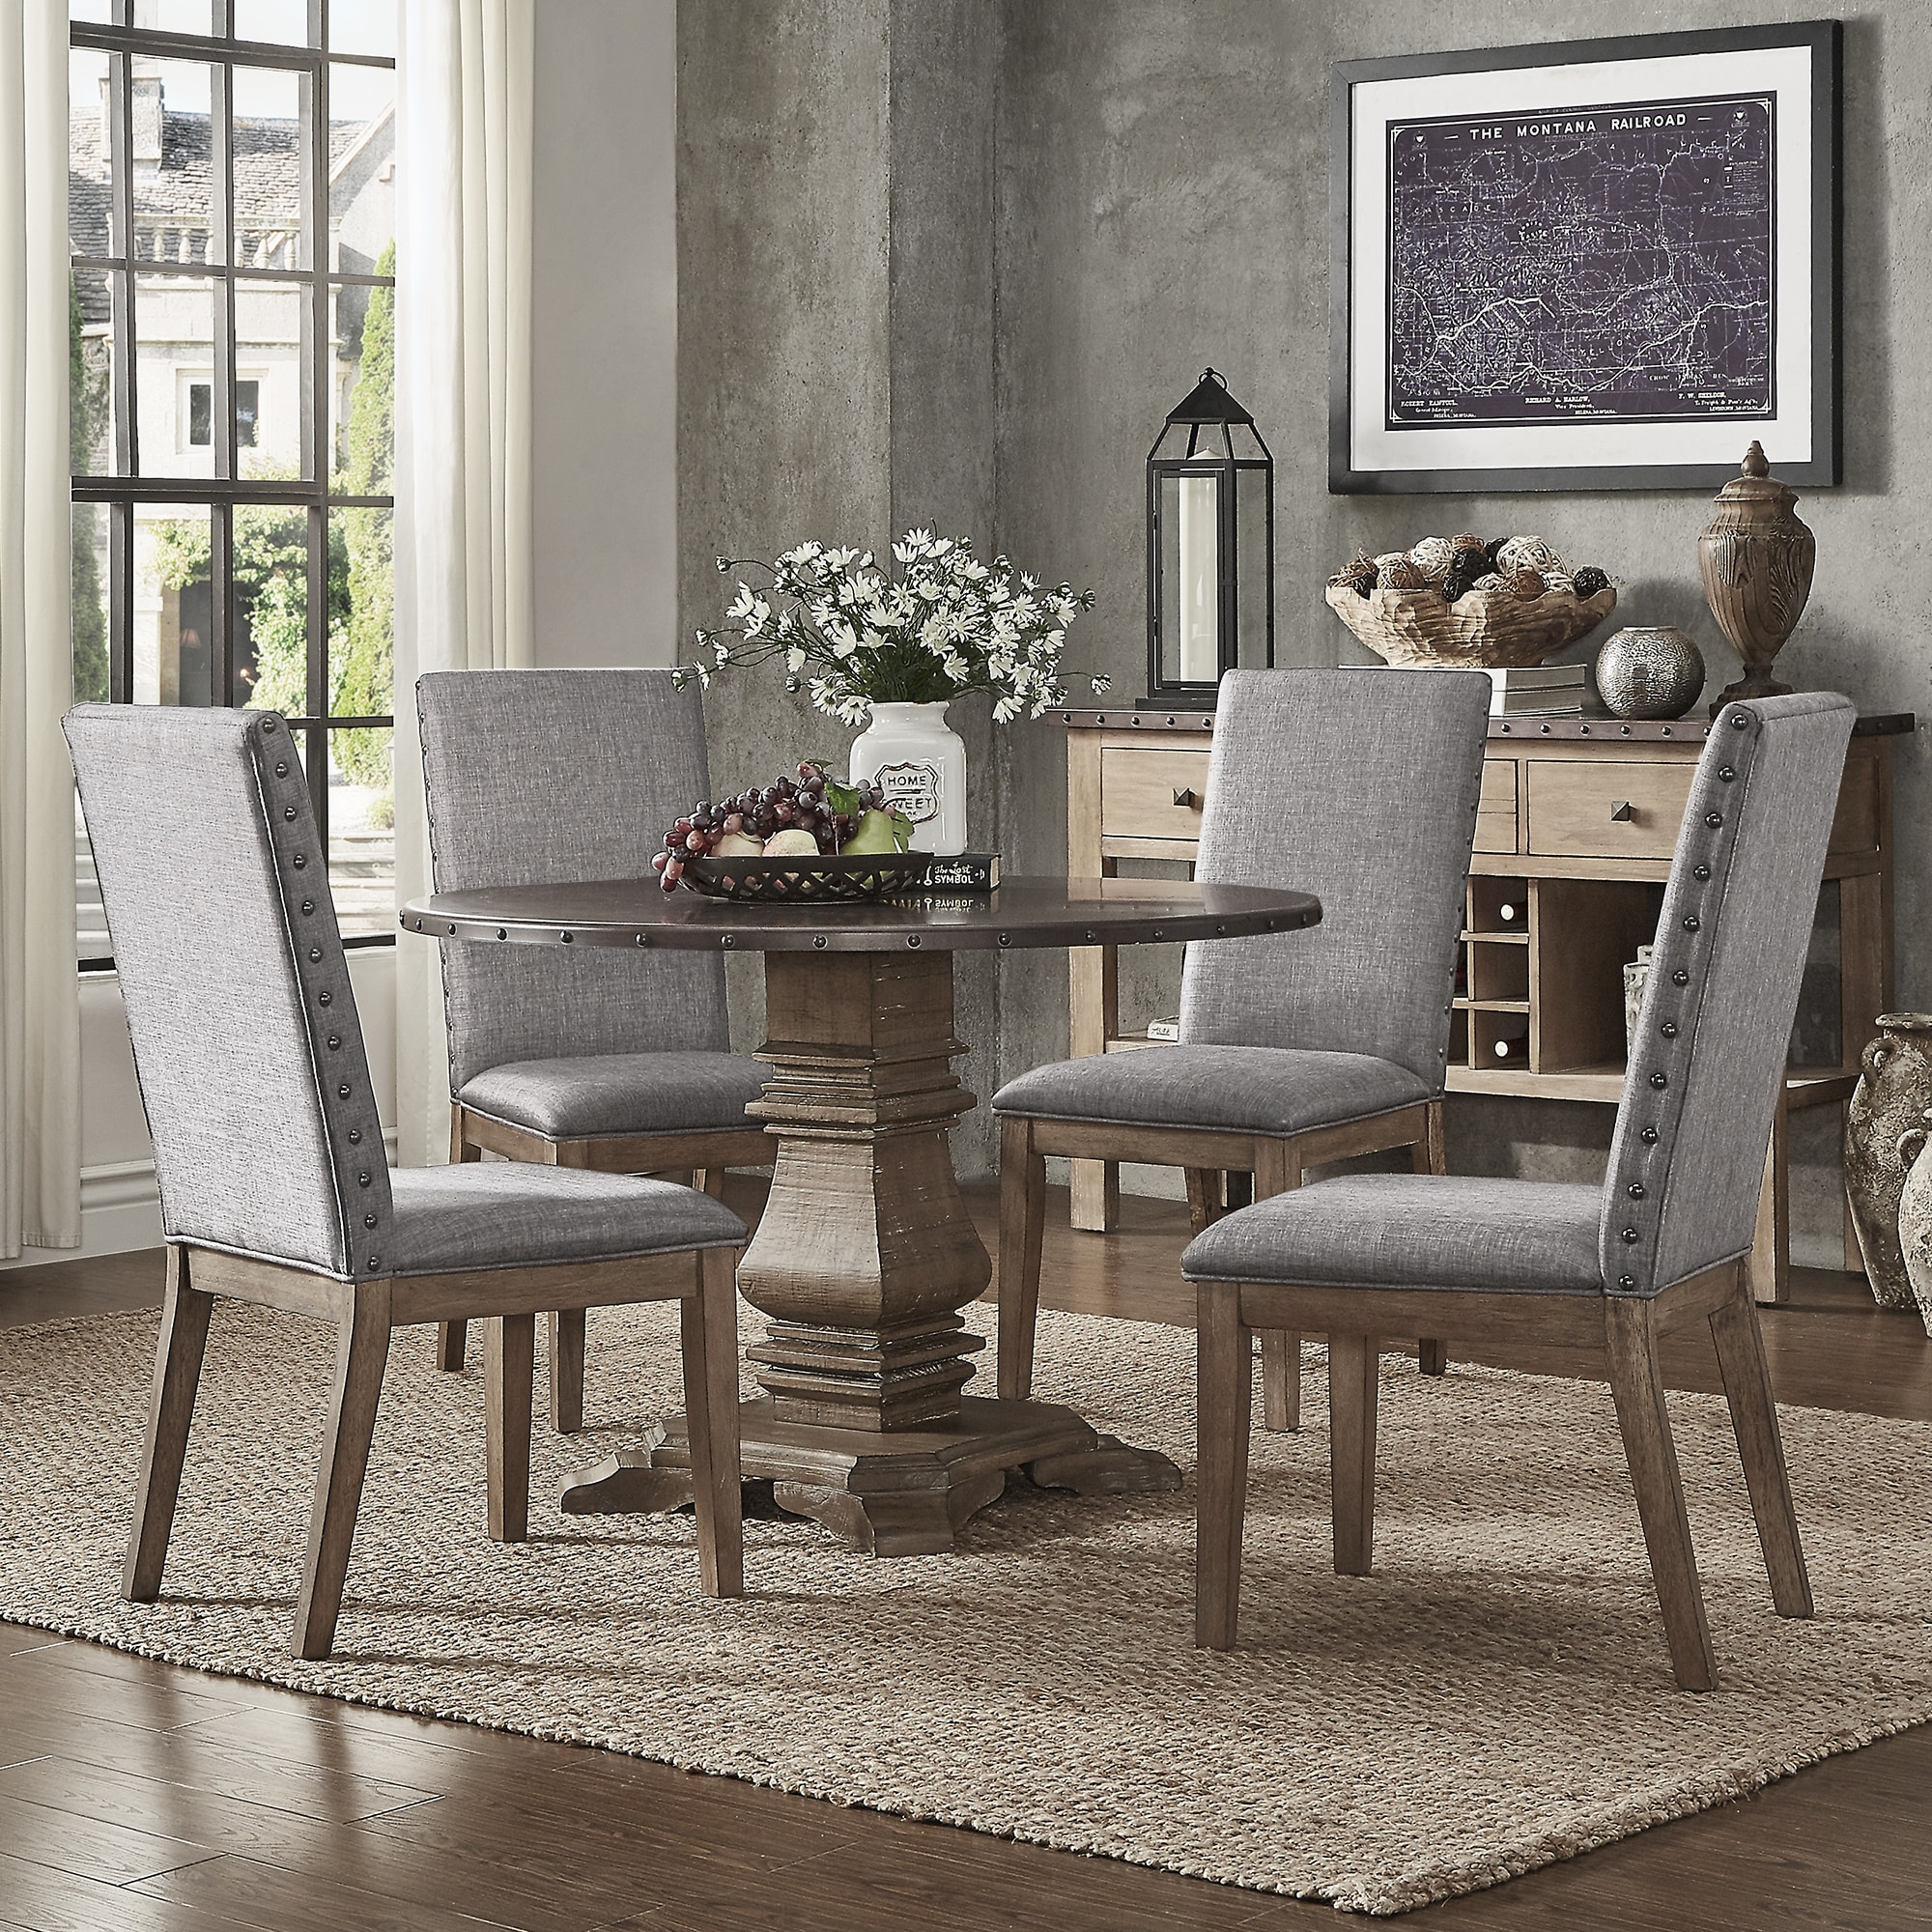 Shop Janelle Round Rustic Zinc Dining Set   Parson Chairs By INSPIRE Q  Artisan   On Sale   Free Shipping Today   Overstock.com   19842966